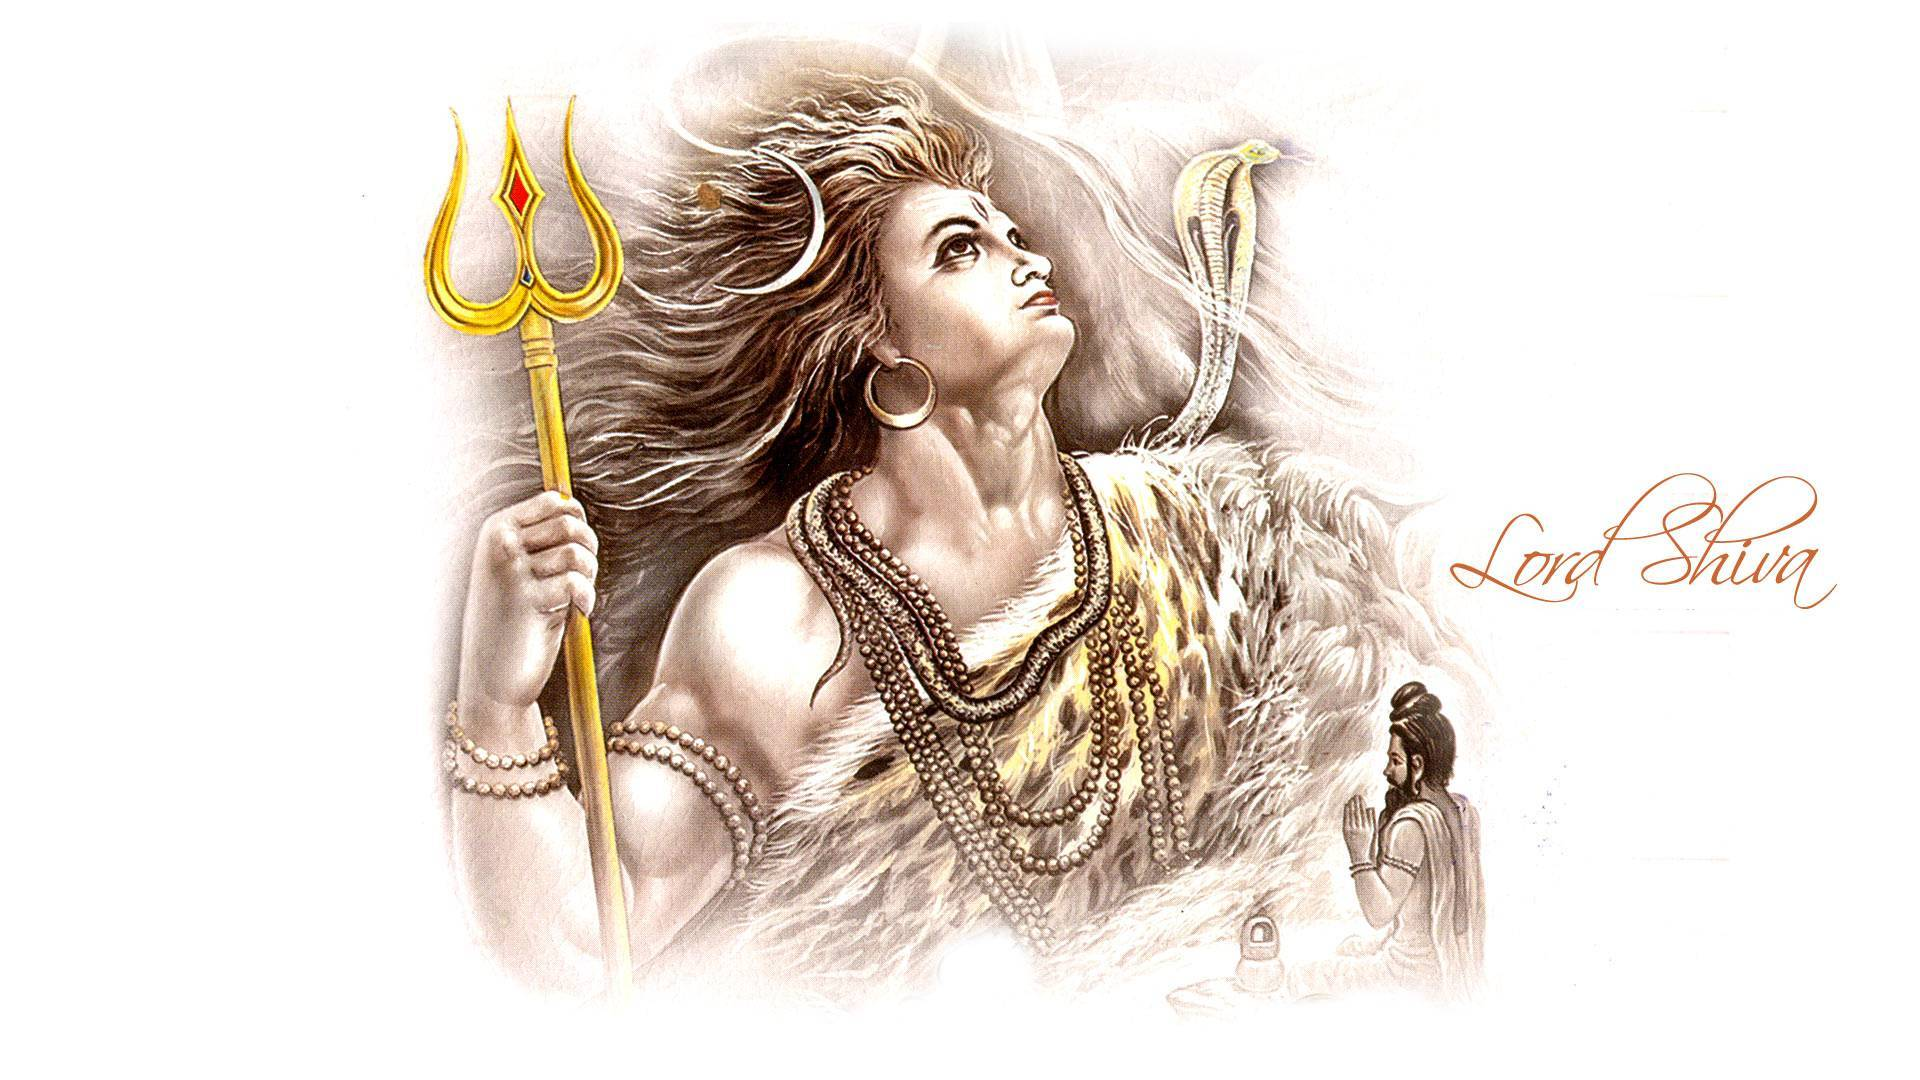 Angry Lord Shiva Wallpapers Wallpaper Cave